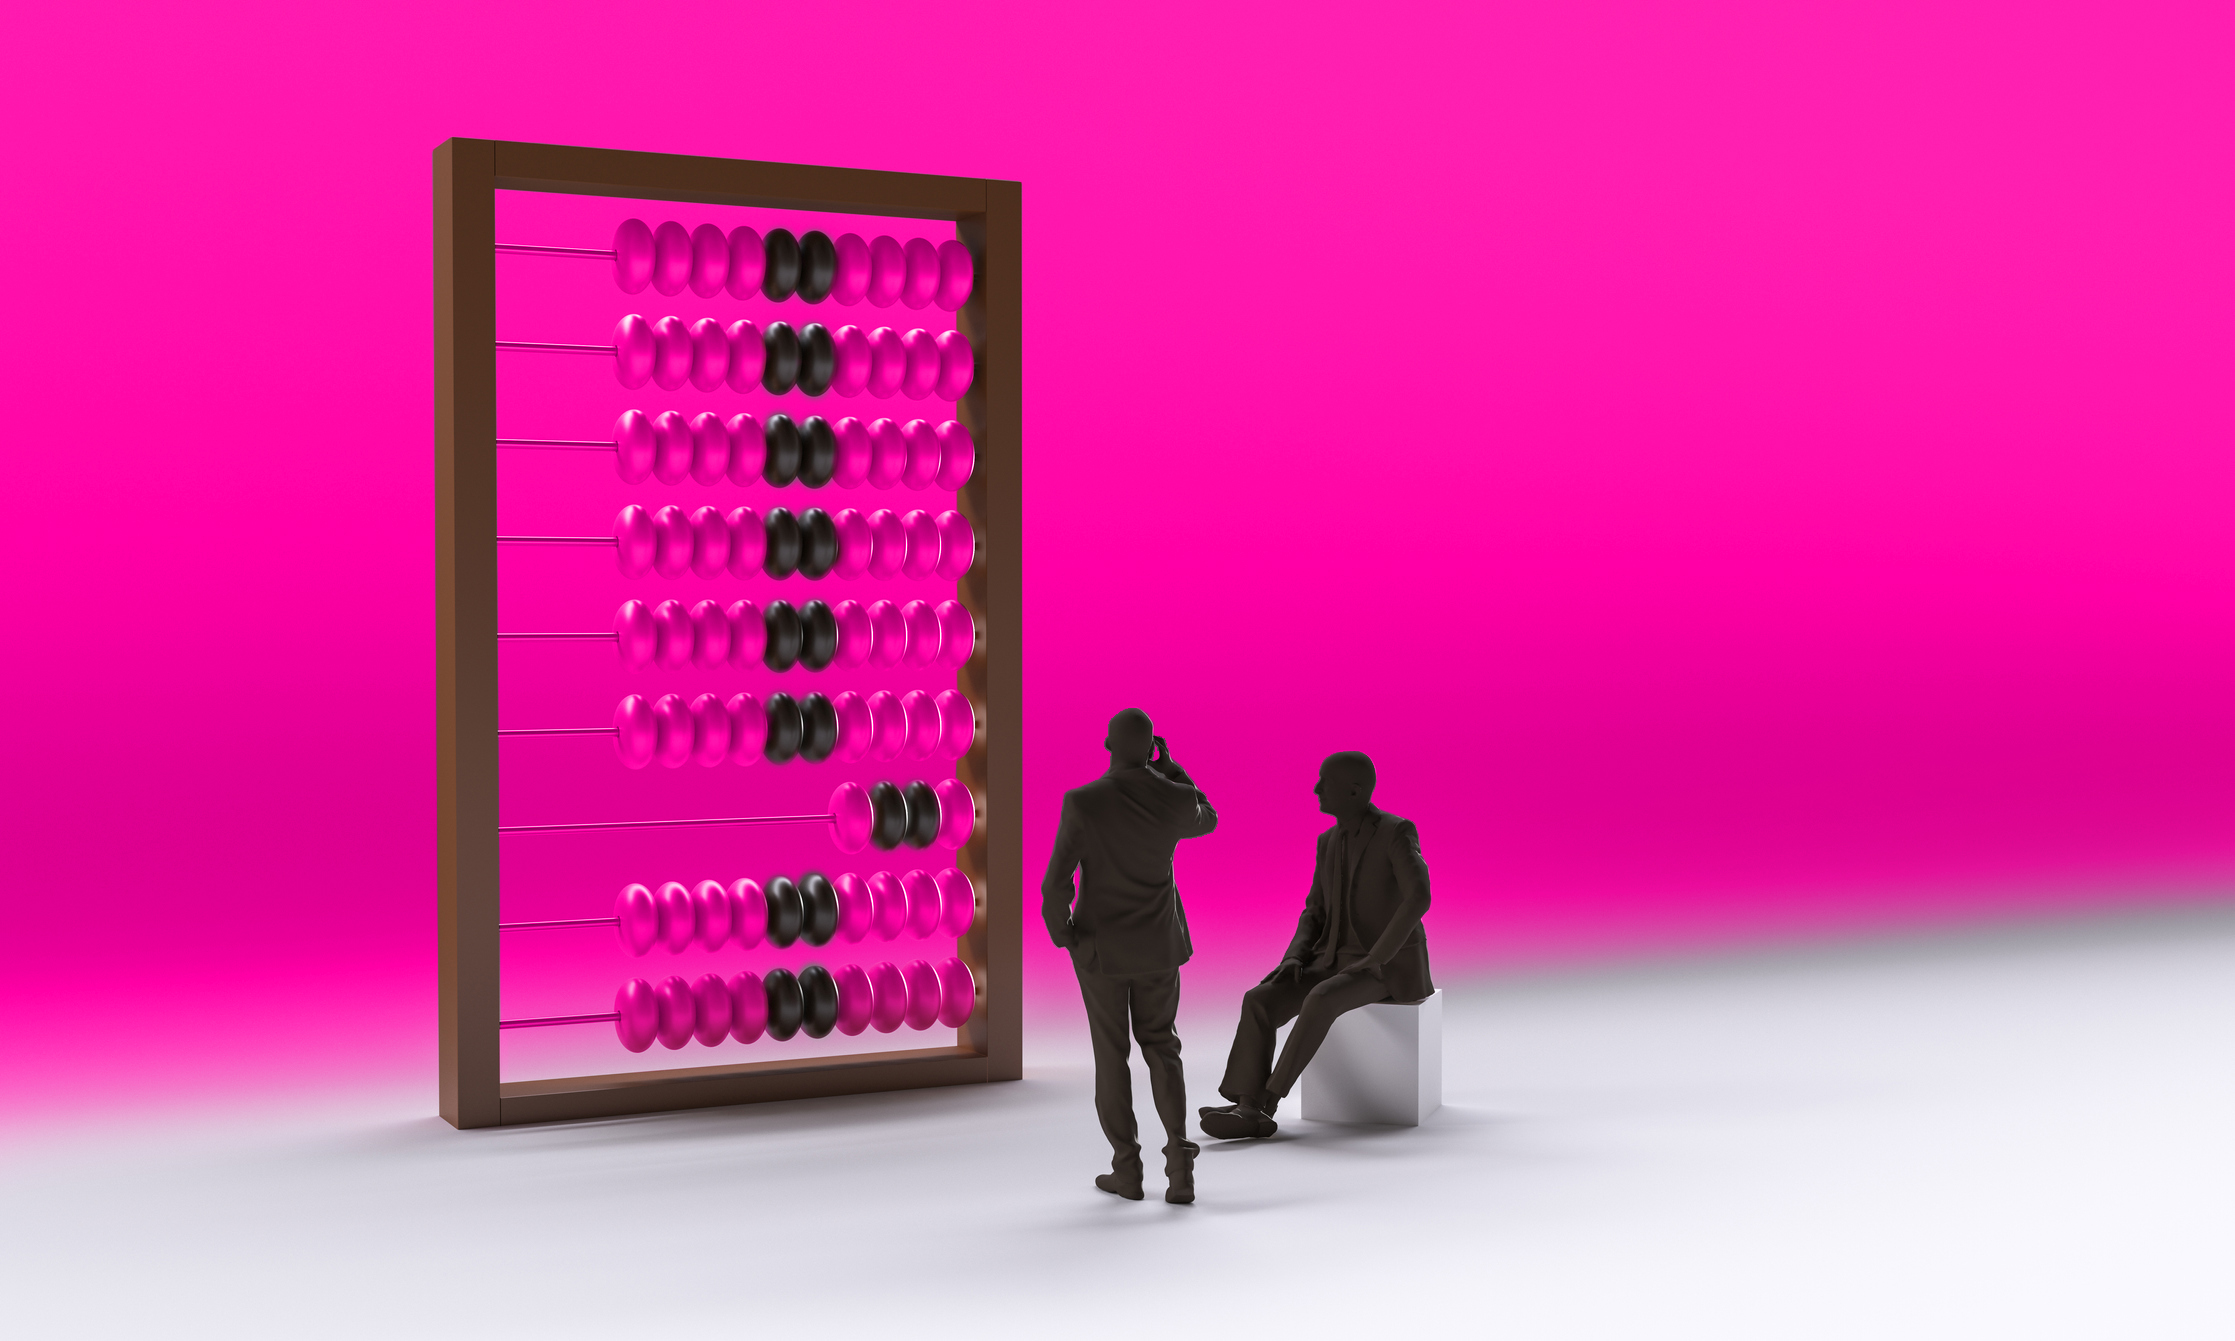 Figures standing in-front of an abacus working out numbers